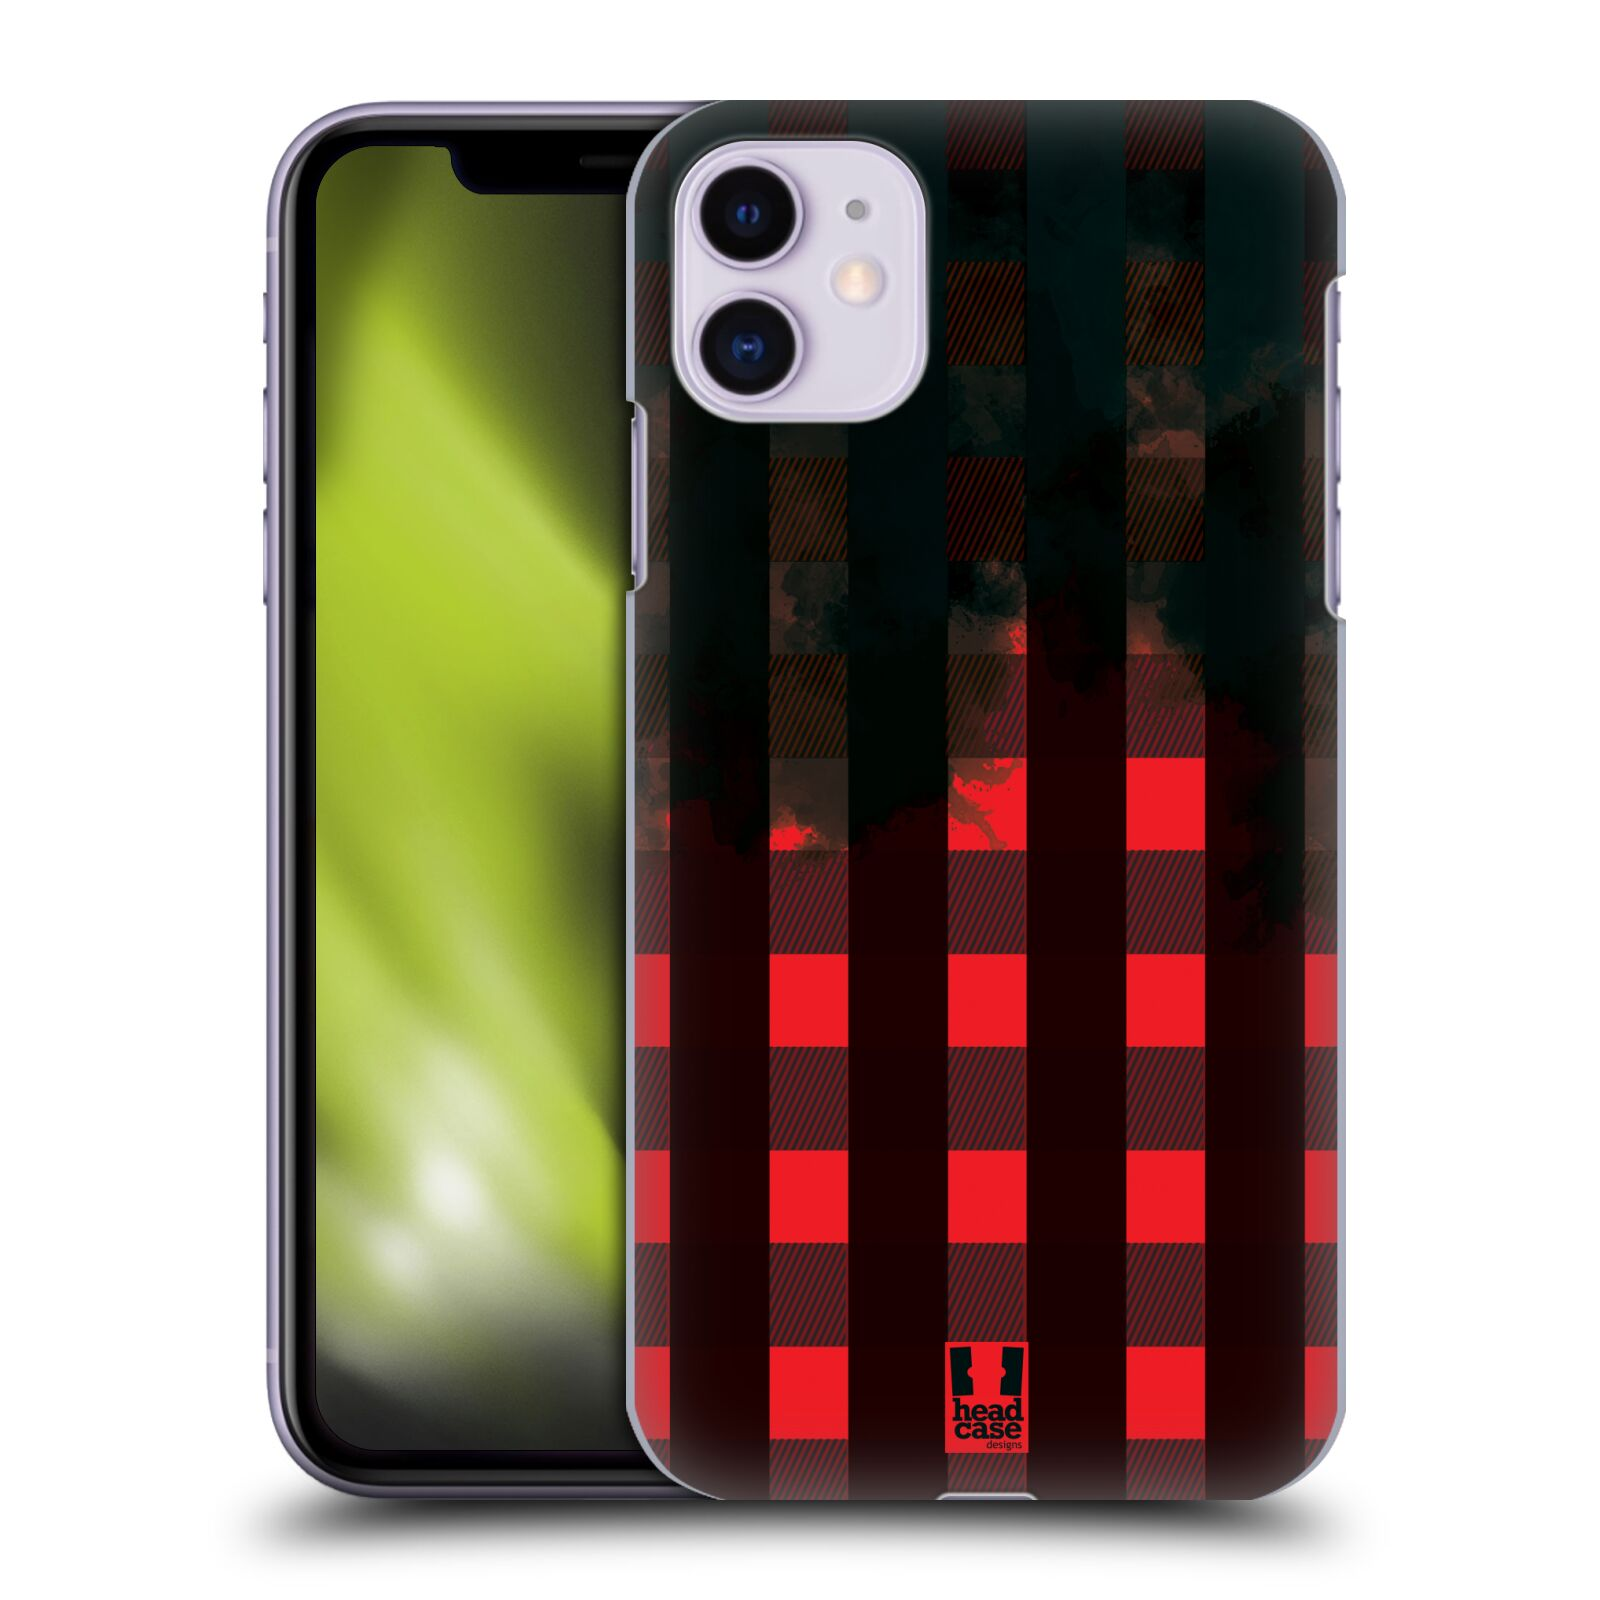 Plastové pouzdro na mobil Apple iPhone 11 - Head Case - FLANEL RED BLACK